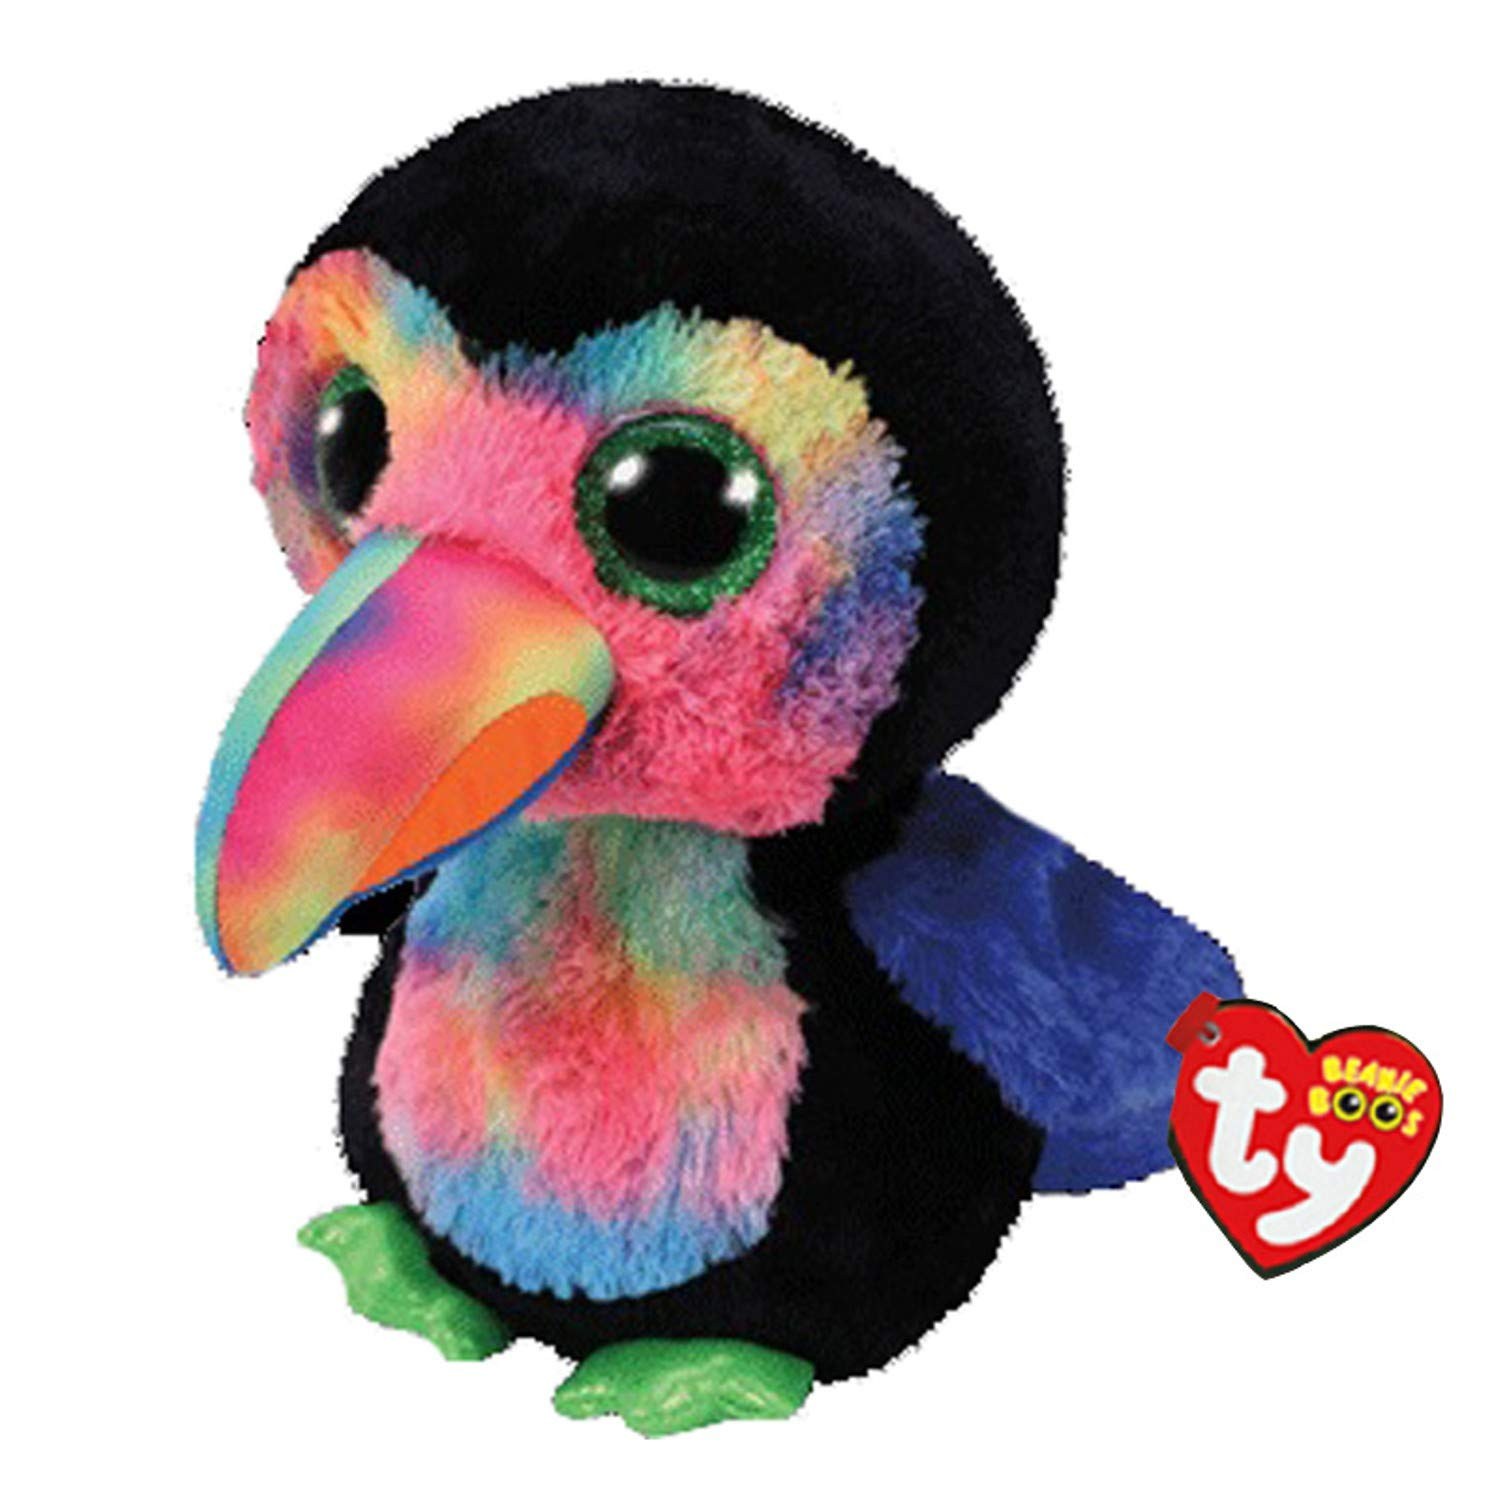 Amazon.com: JEWH Ty Beanie Boos - Plush Toy (Owl, Panther, Penguin, Dog, Giraffe, Cat, Raccoon, Sheep, Bat,...) Cattle Plush Animal (15cm) (Tukian): Toys ...